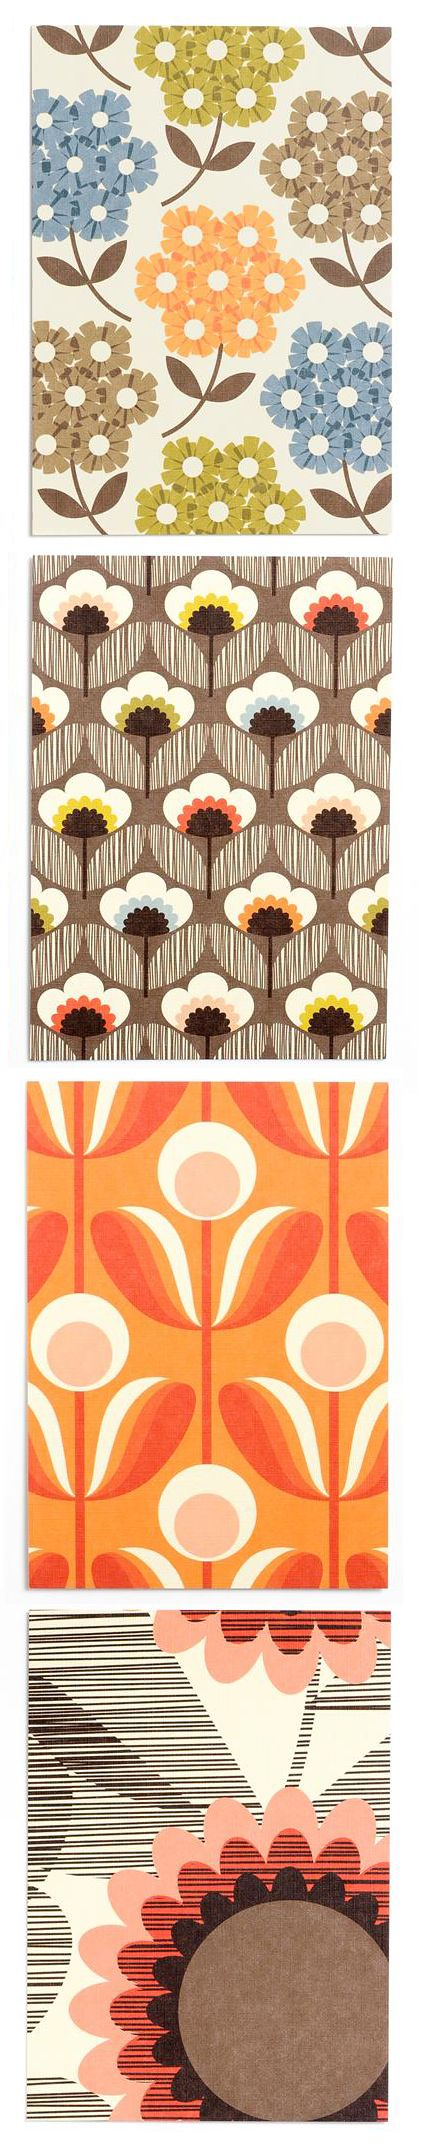 I admire Orla Kiely as a print designer as her bold and simple designs are very effective and can be used for both fashion and interiors